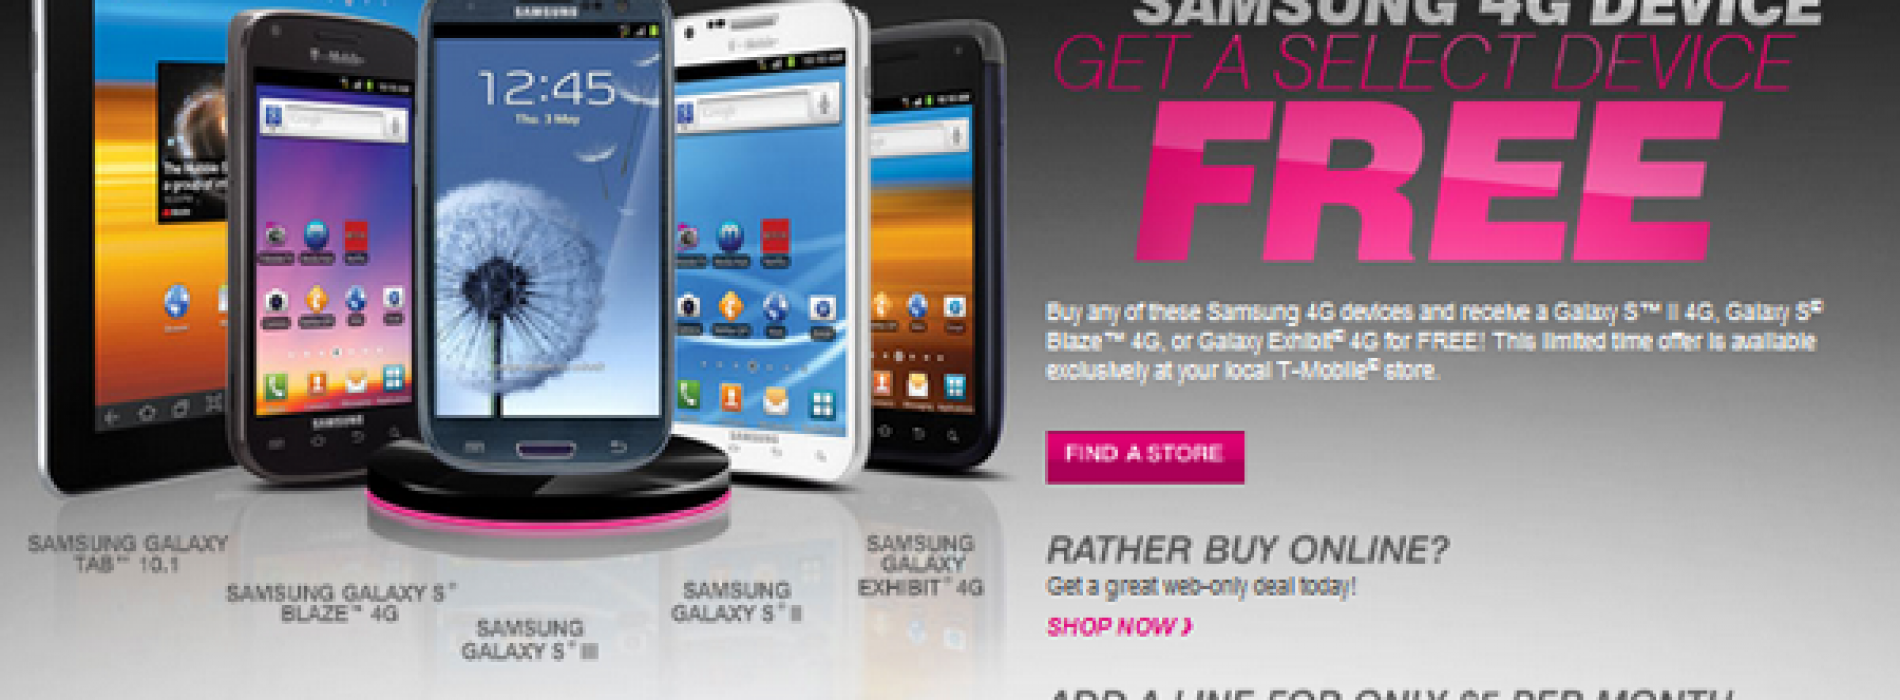 T-Mobile Back-to-School promos include BOGO Samsung smartphones (UPDATE)